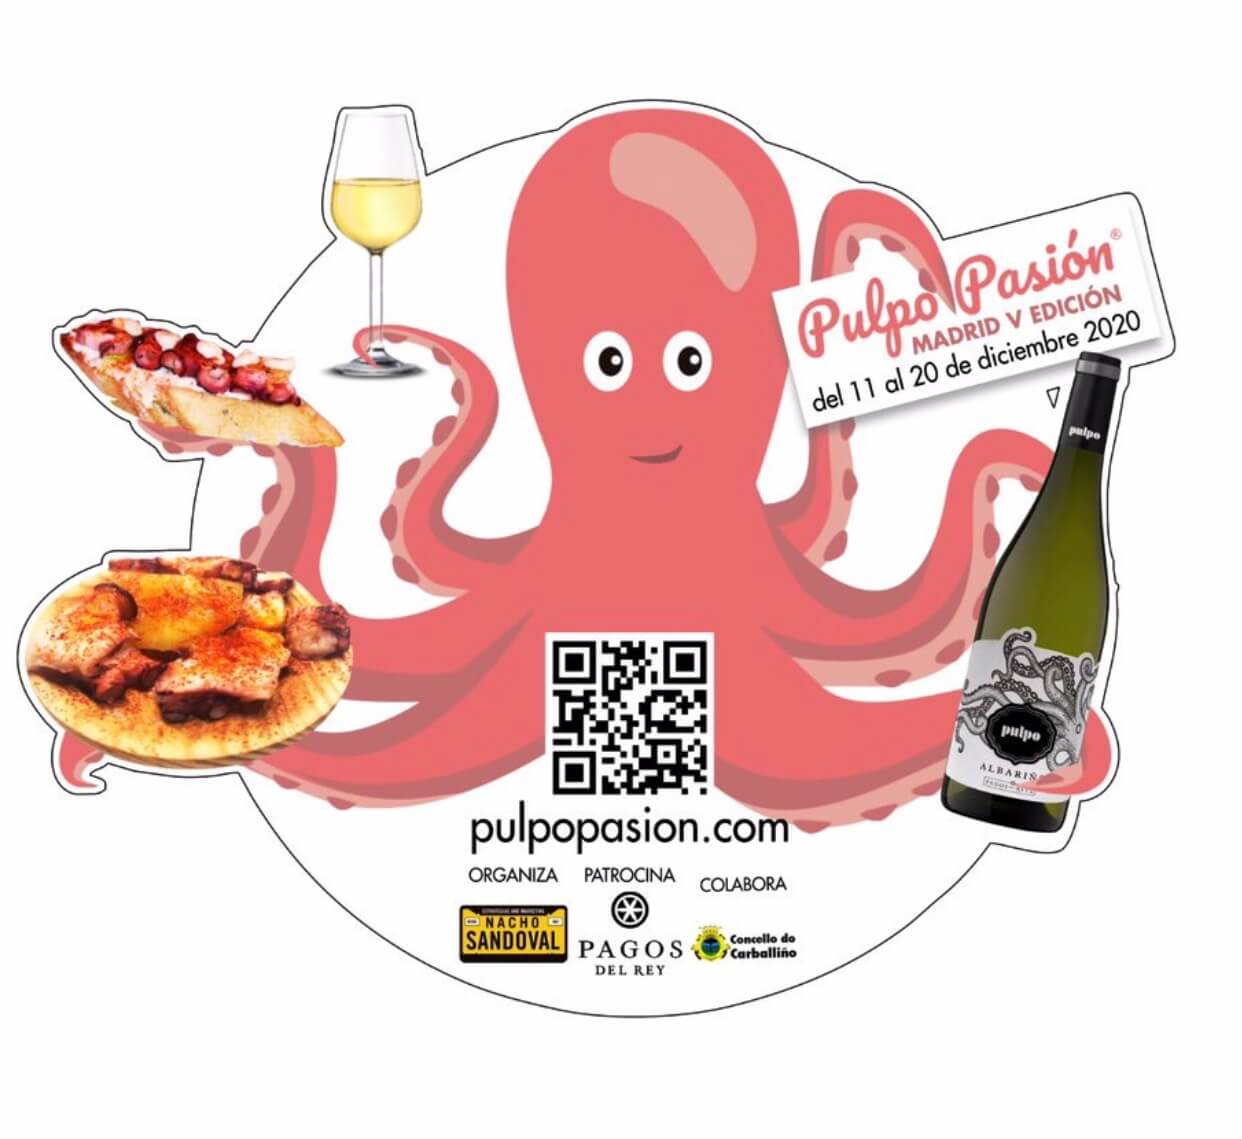 Pulpo Pasión Madrid 2020